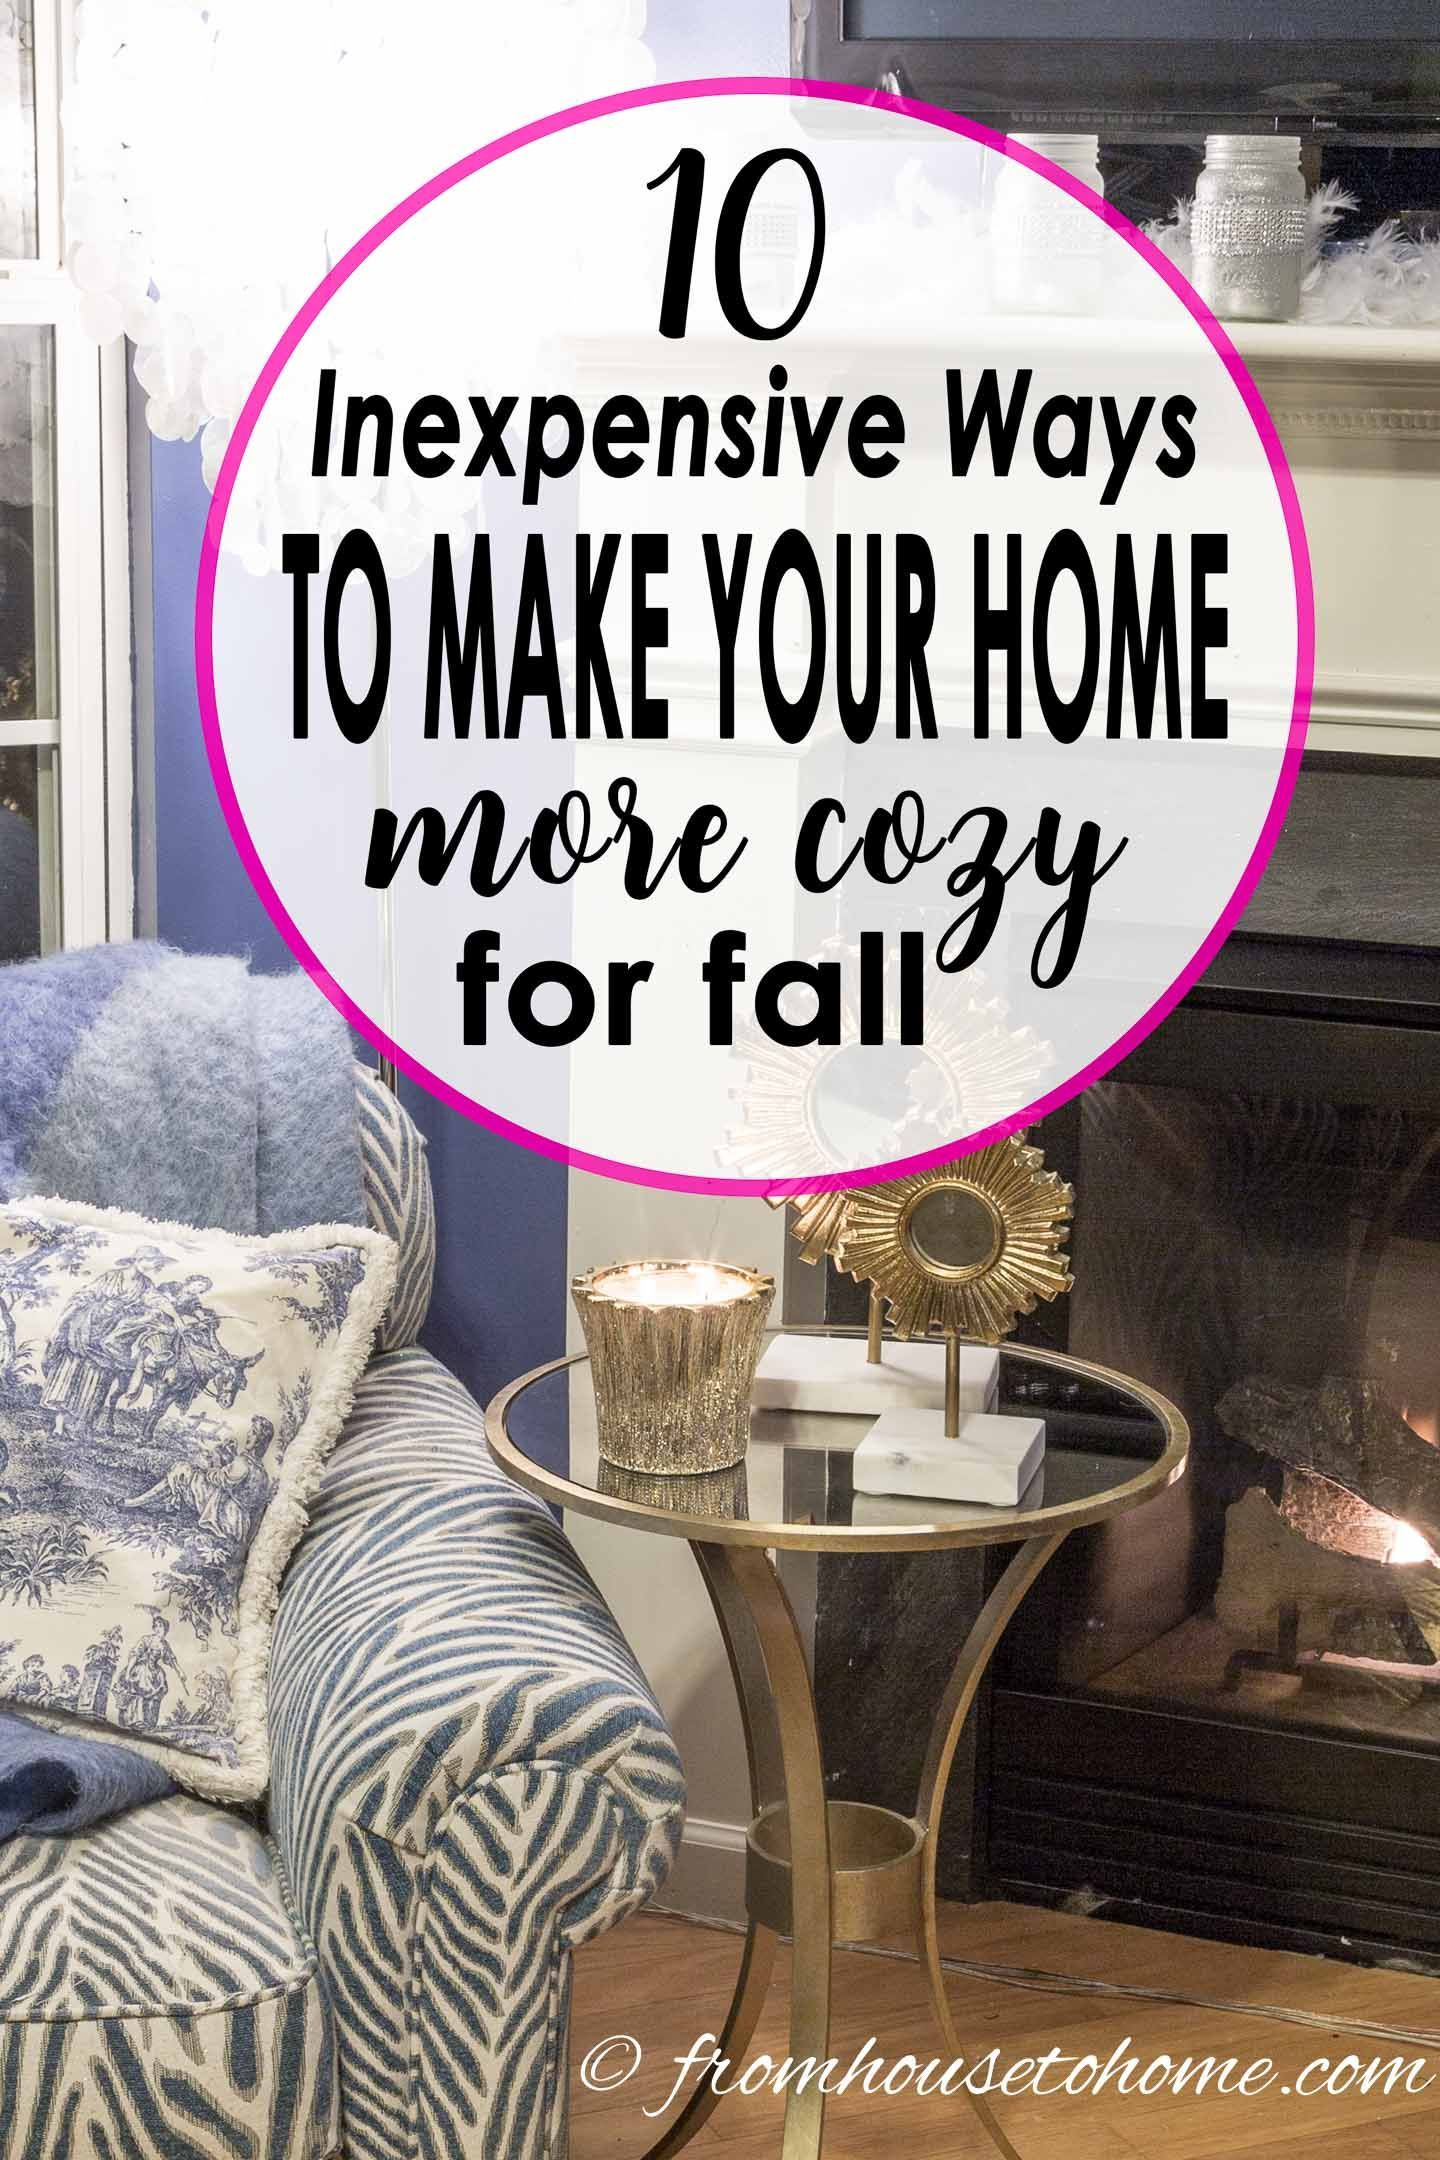 11 Ways To Make The Most Of Your Dorm Room: 11 Inexpensive Ways To Make Your Home More Cozy For Fall